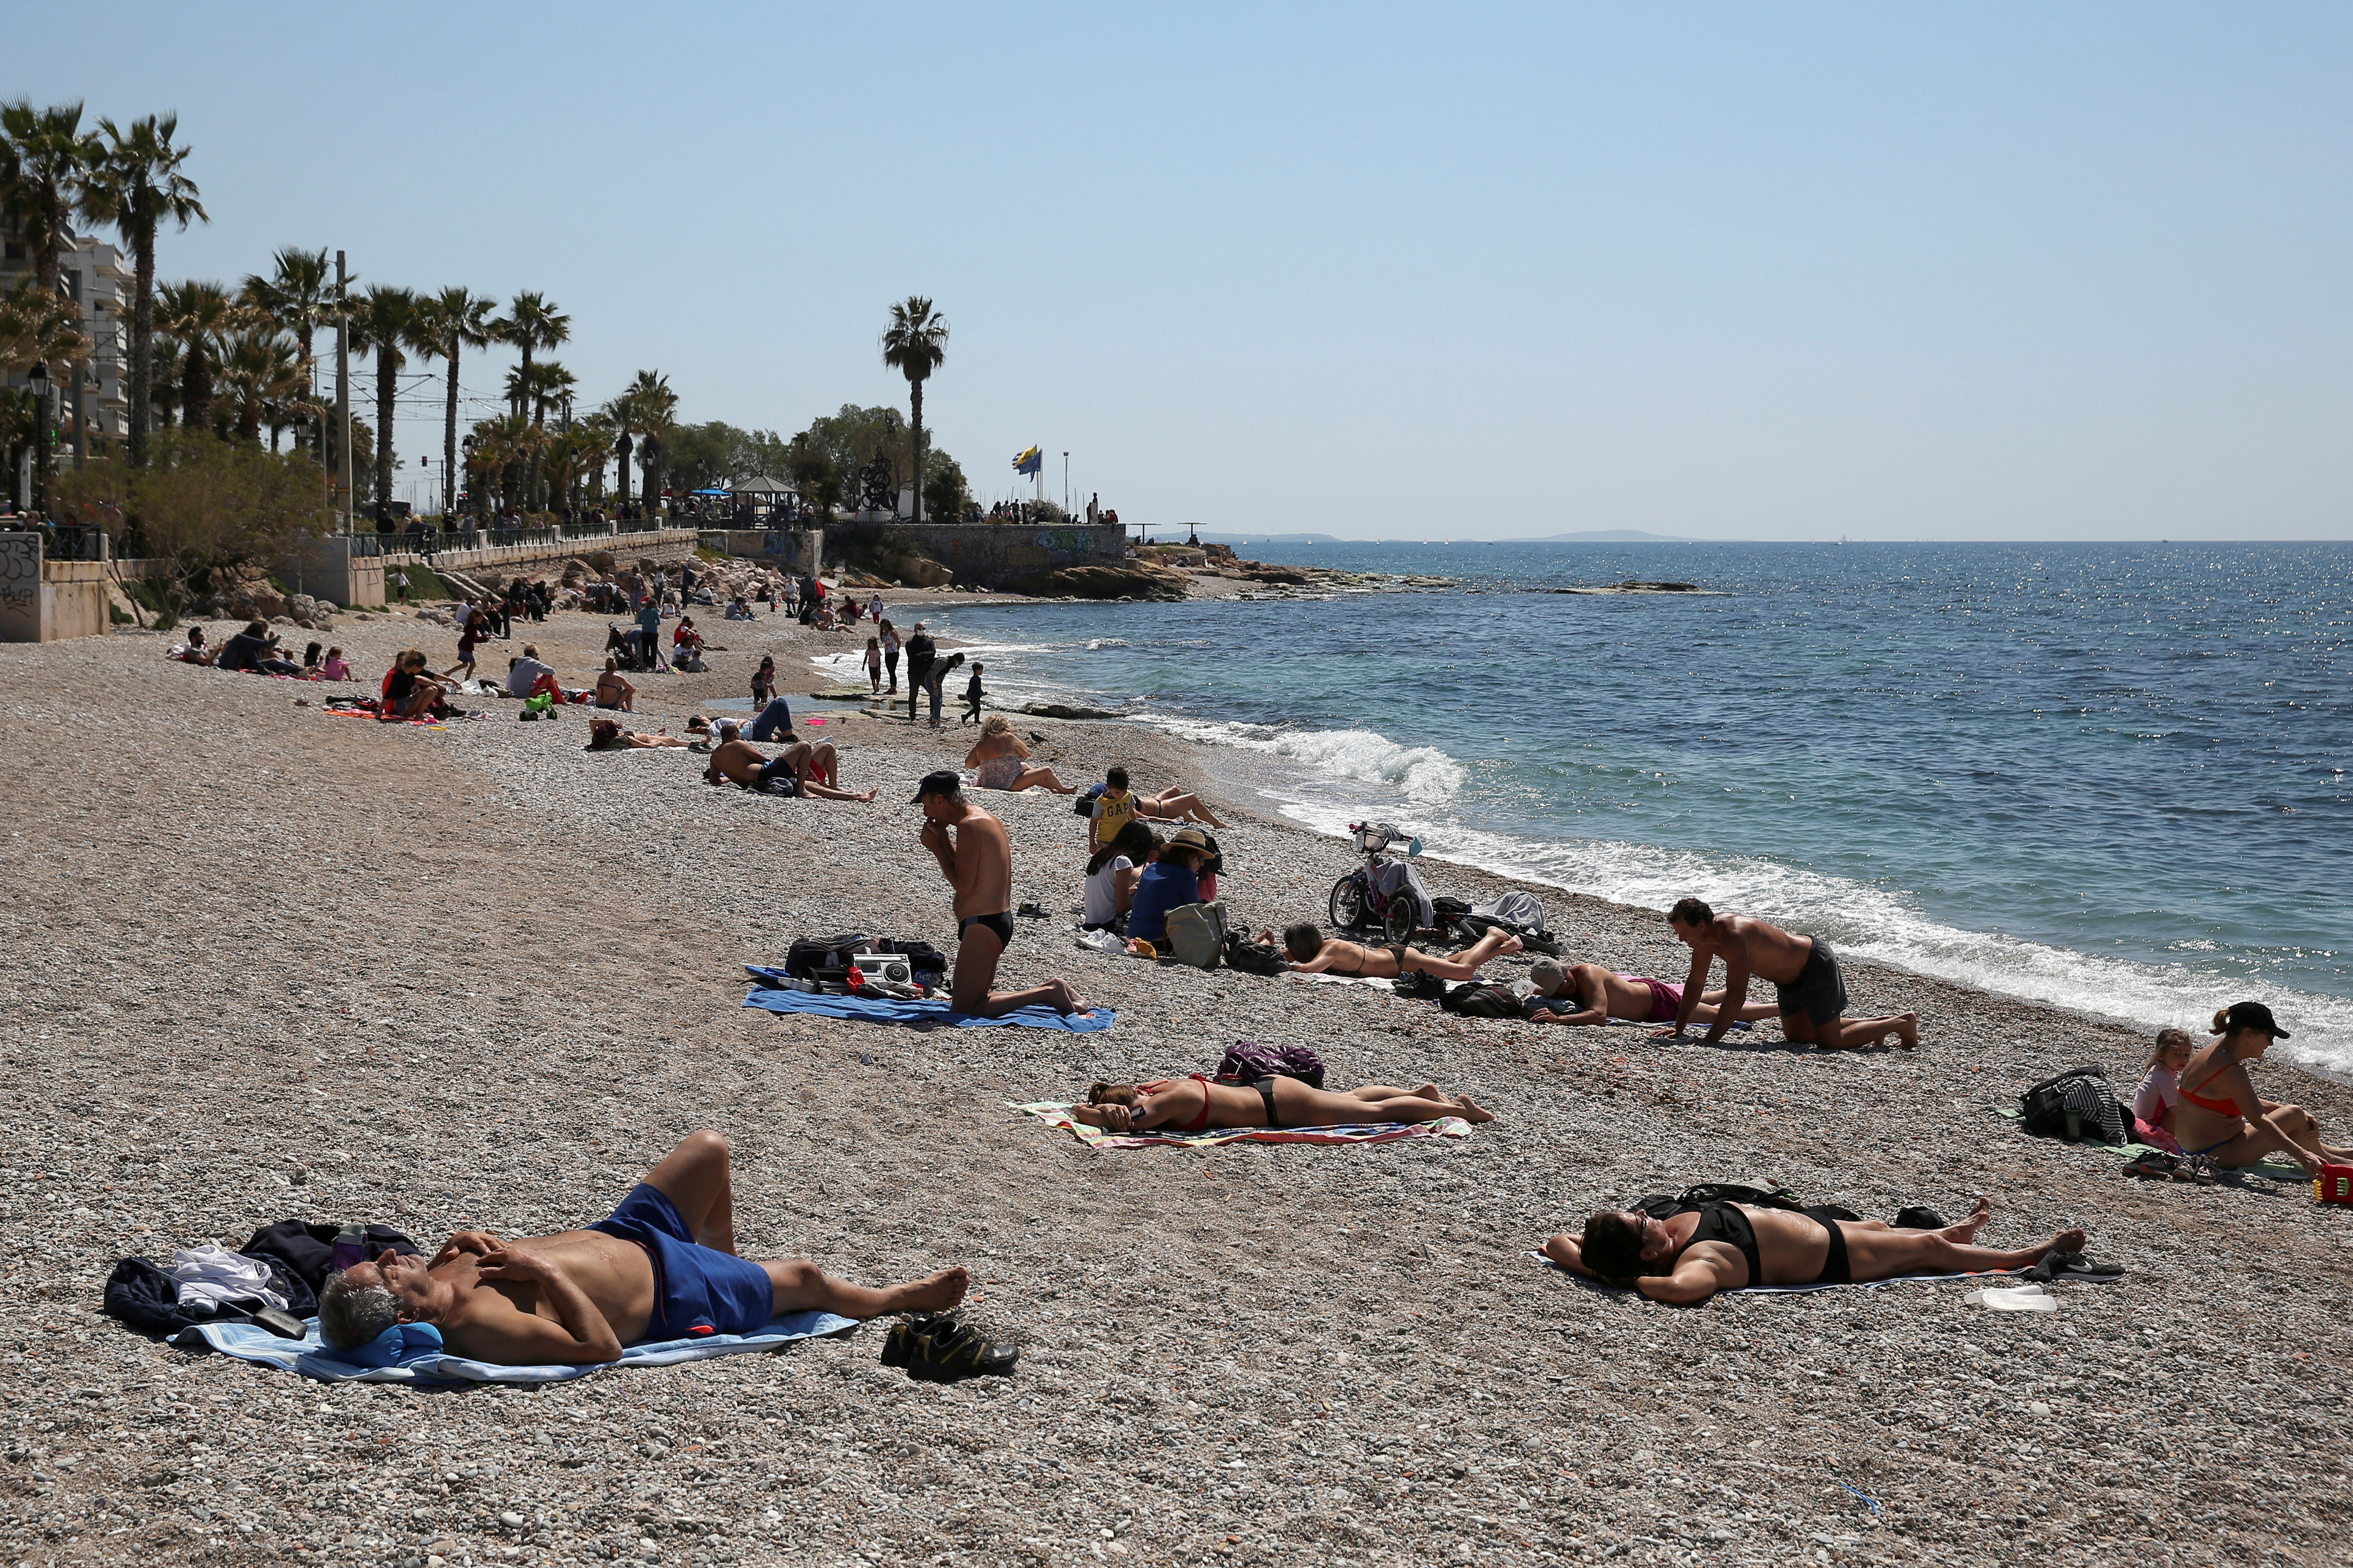 People enjoy the beach following the easing of measures against the spread of the coronavirus disease (COVID-19) in Faliro suburb, near Athens, Greece, April 3, 2021. REUTERS/Costas Baltas/File Photo